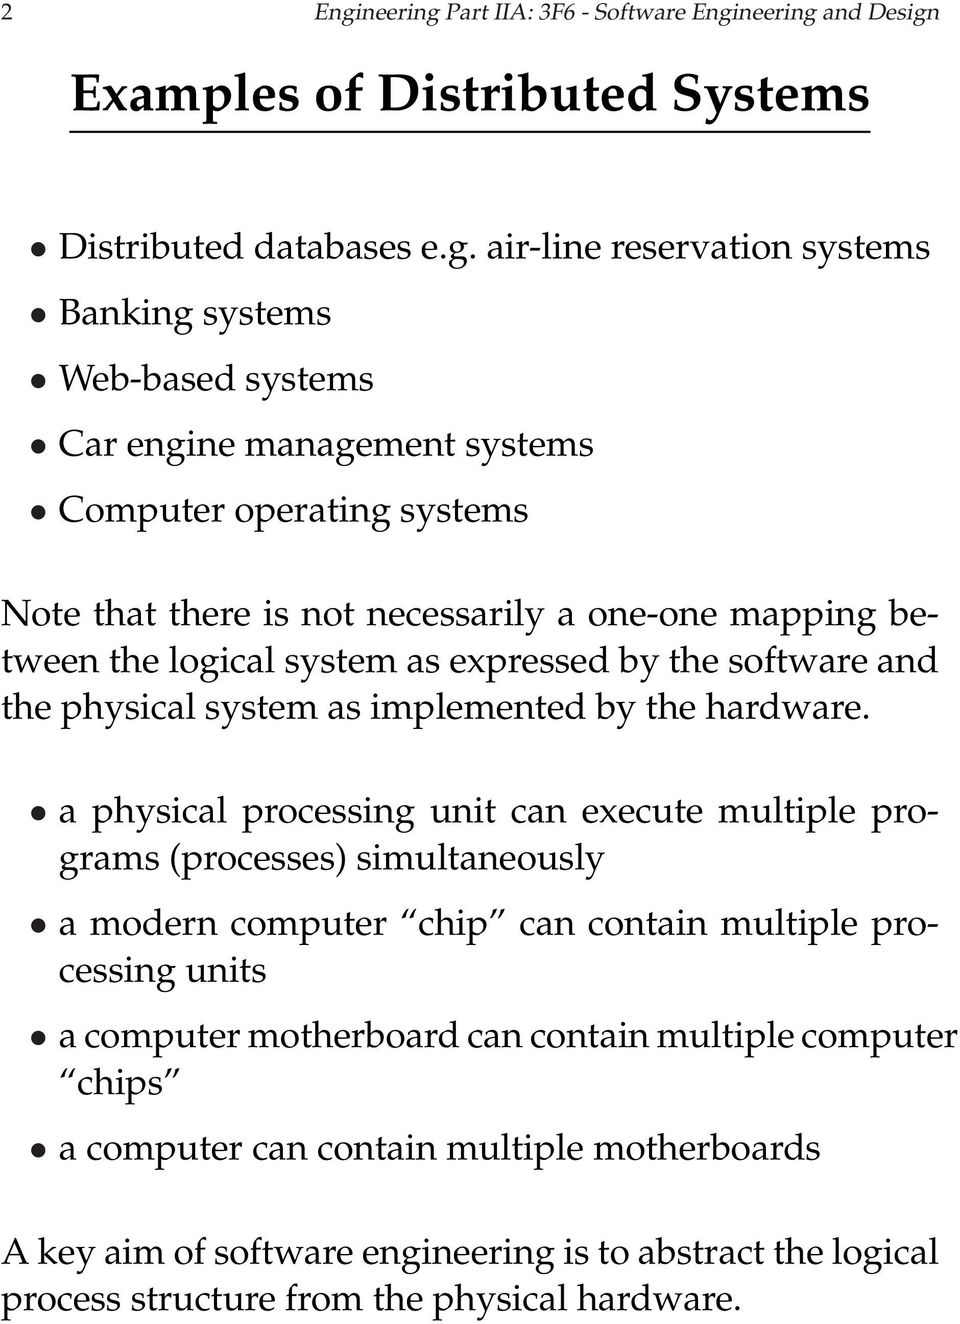 3f6 Software Engineering And Design Handout 10 Distributed Systems I With Markup Steve Young Pdf Free Download